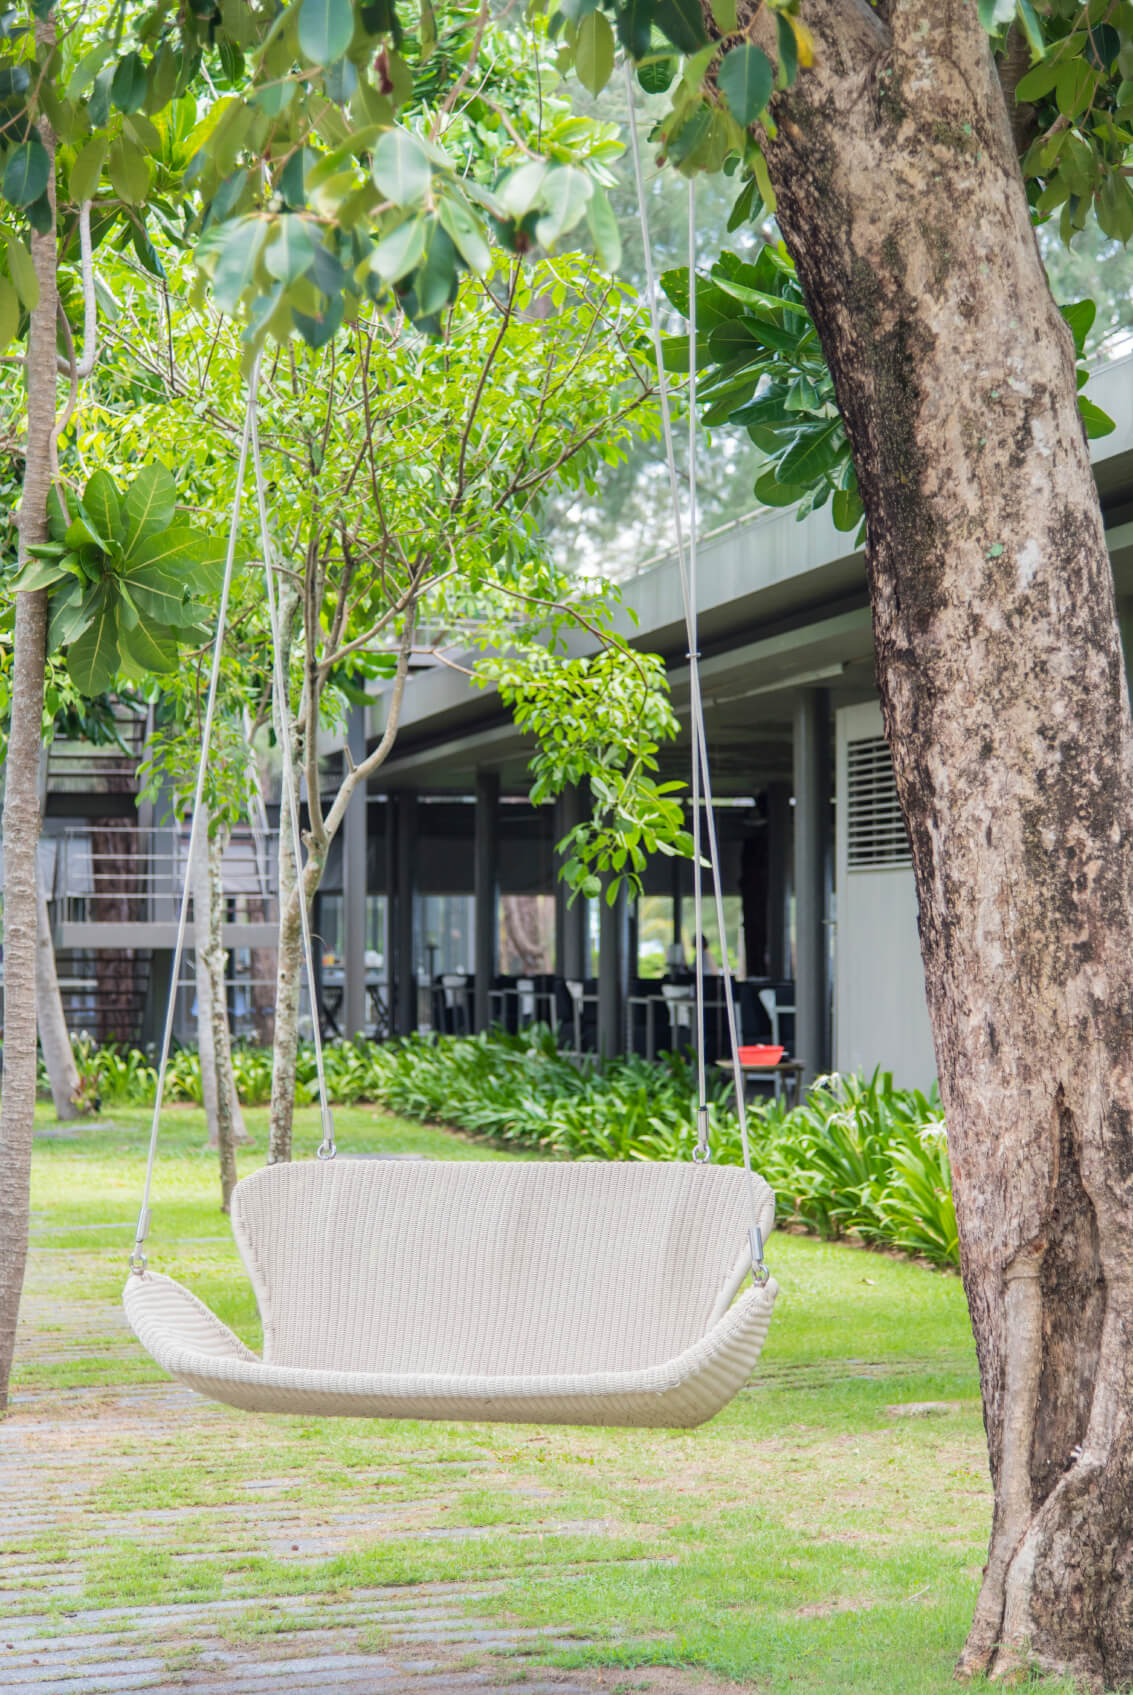 Here is an interesting yard swing with a simple and minimal design. The simple and bright color of this seat works well with any design, and would look great in any garden.